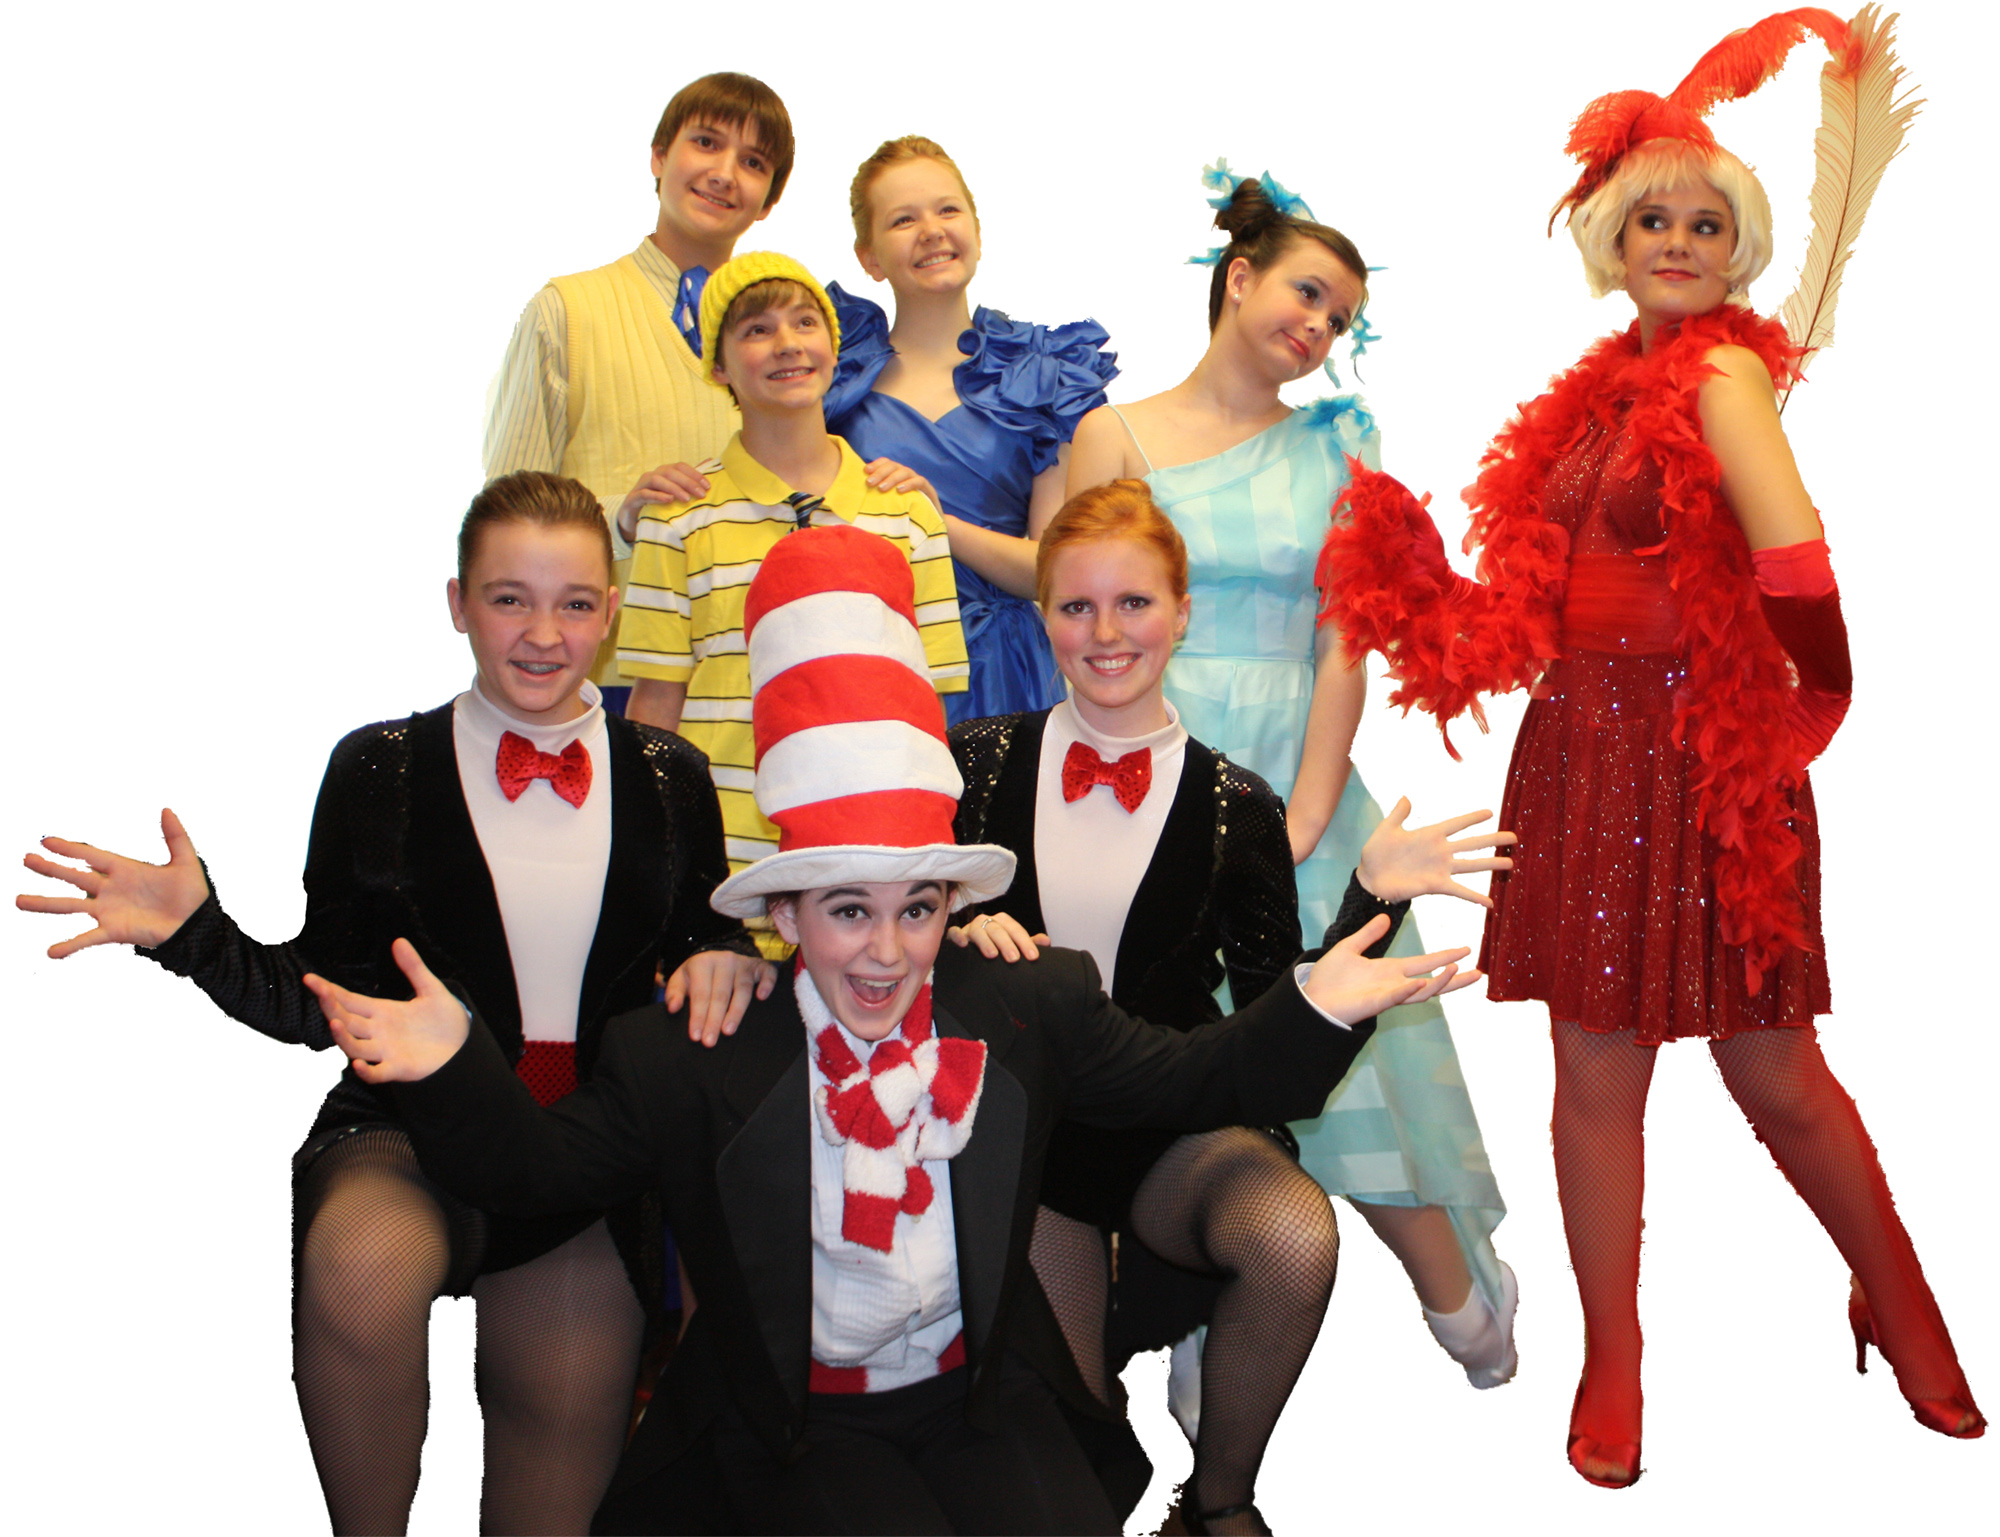 Musical Theatre of Anthem. 2012. Cast members from Seussical, Jr. (Photo by Olga Smirnoff)